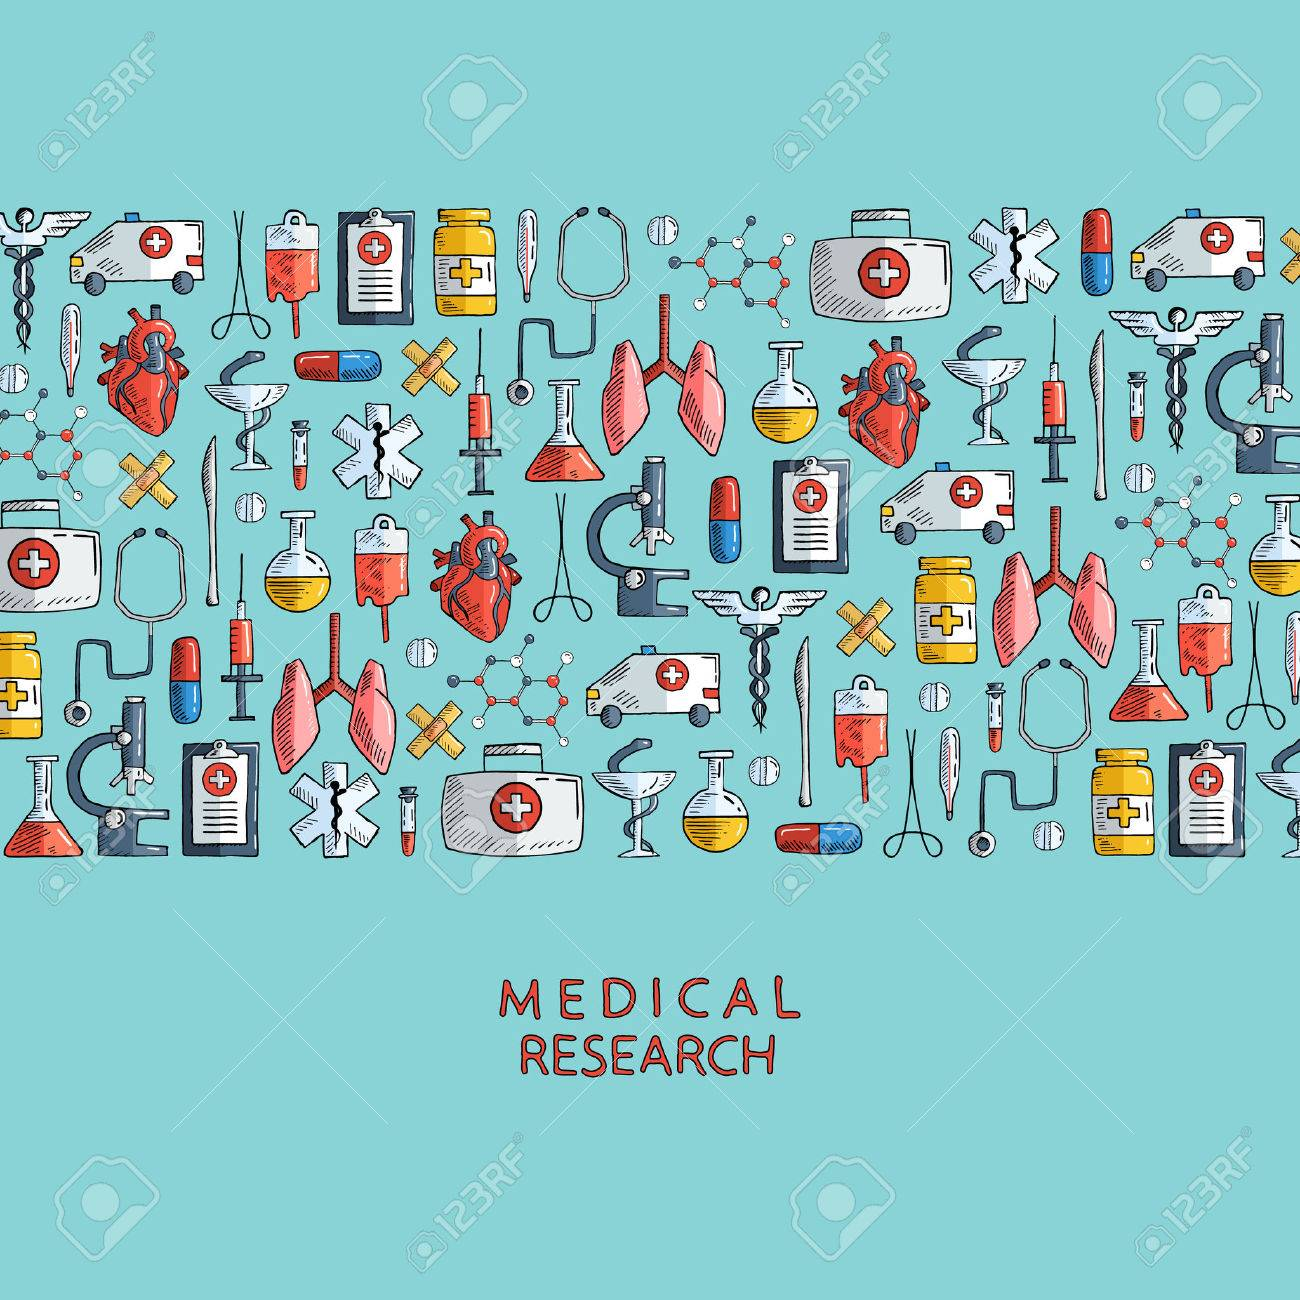 medical research hand drawn health care and medicine icons rh 123rf com Medical Logo Medical Symbol Vector